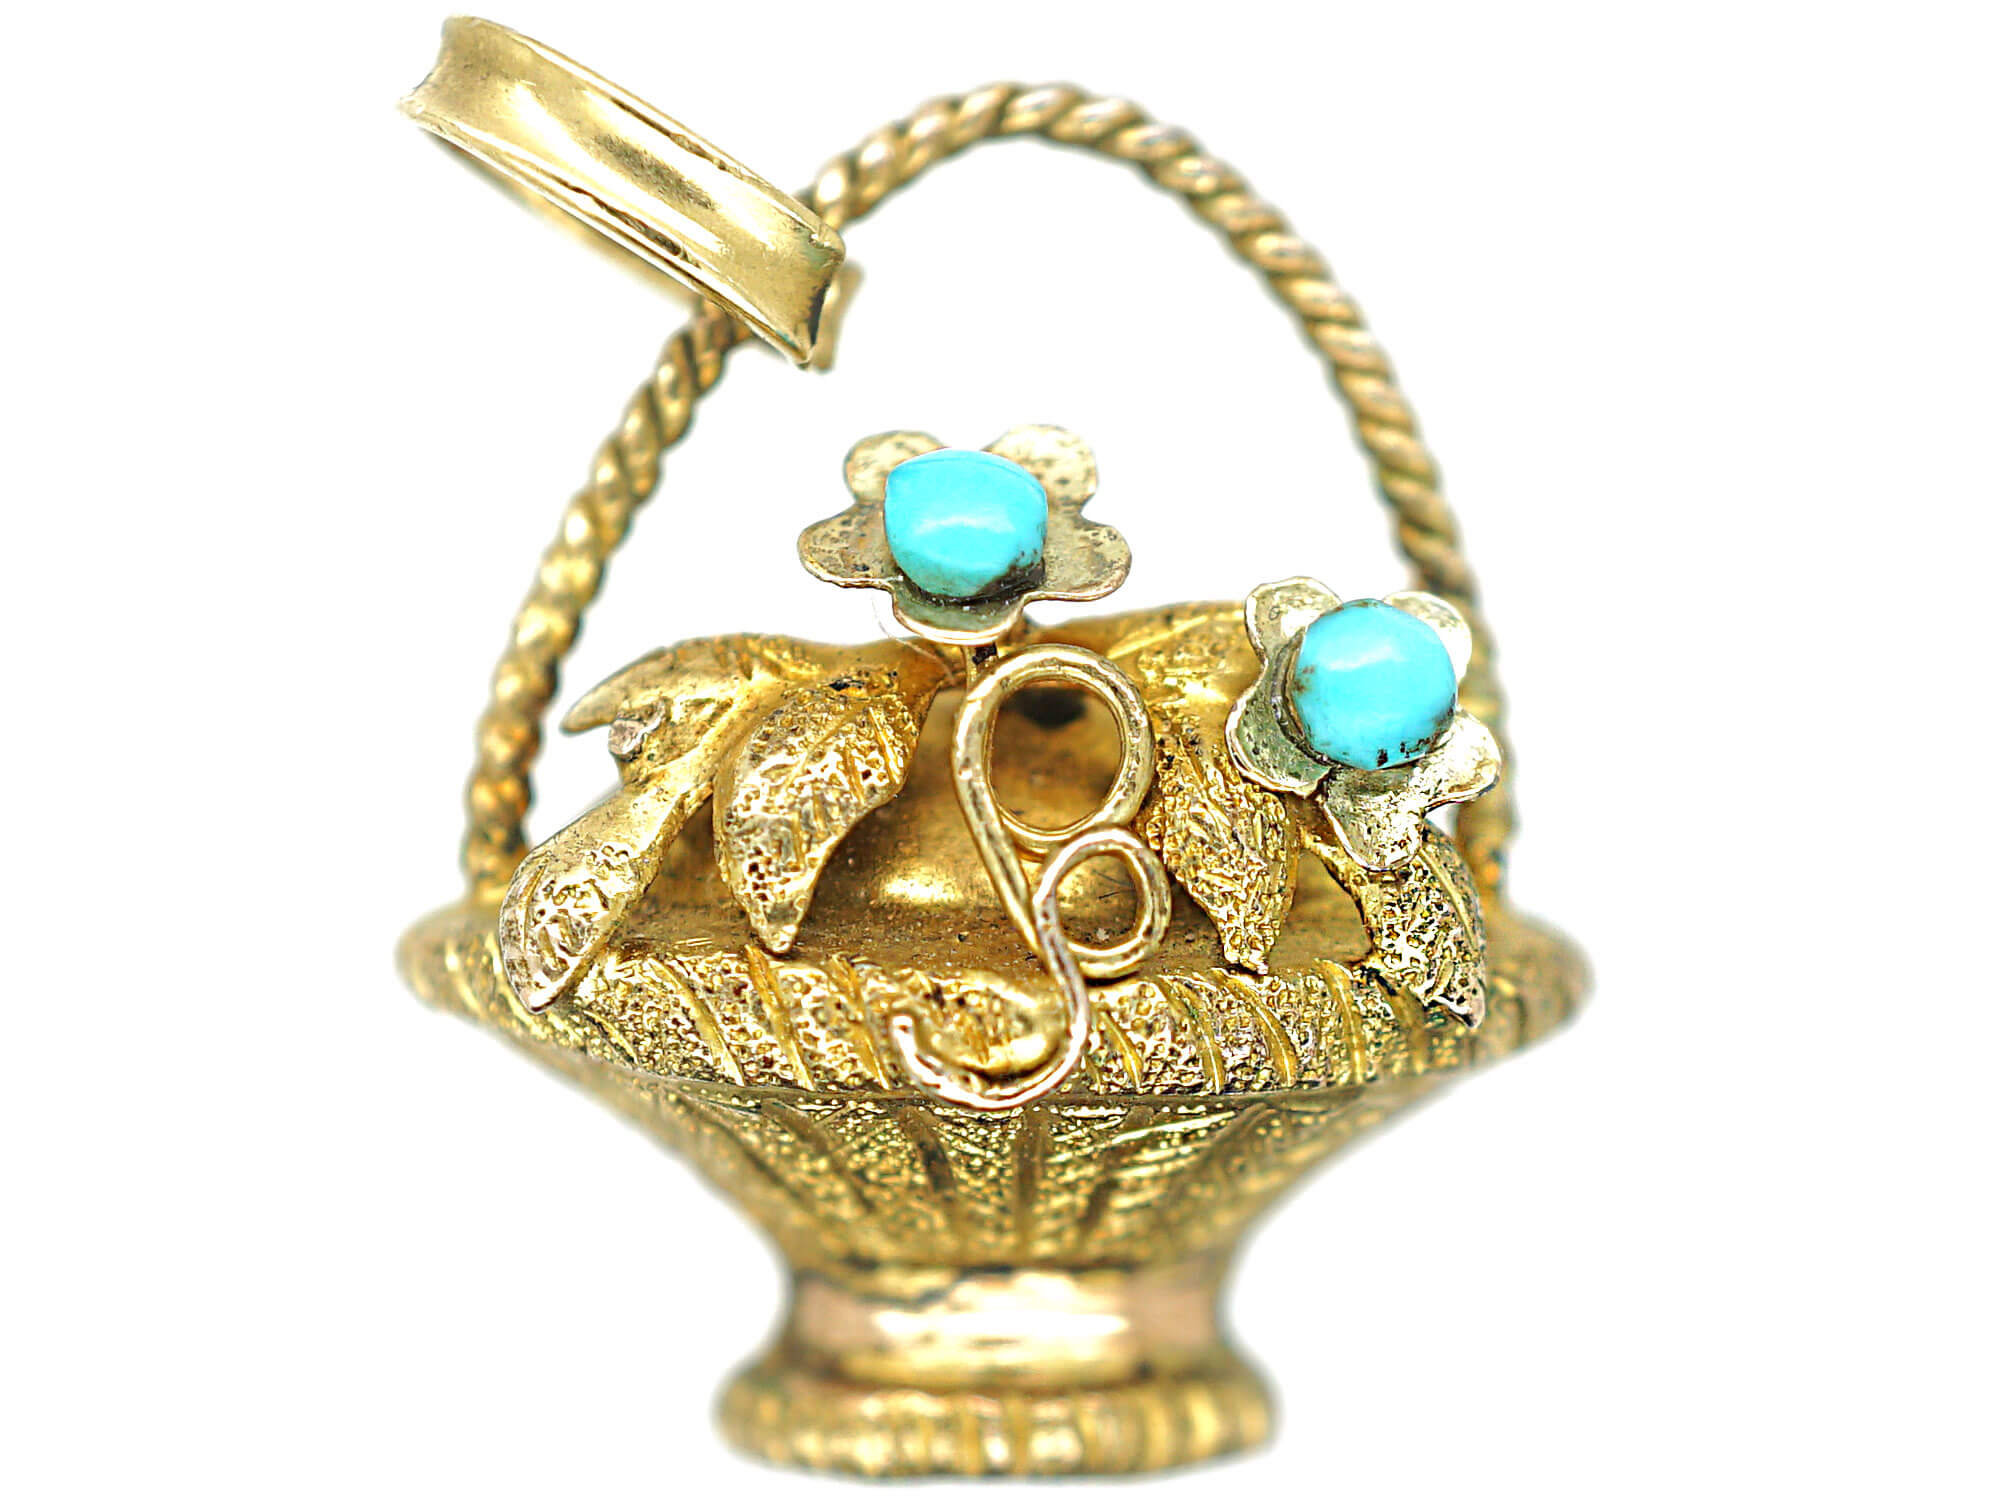 Georgian 15ct Gold Basket Charm set with Turquoise